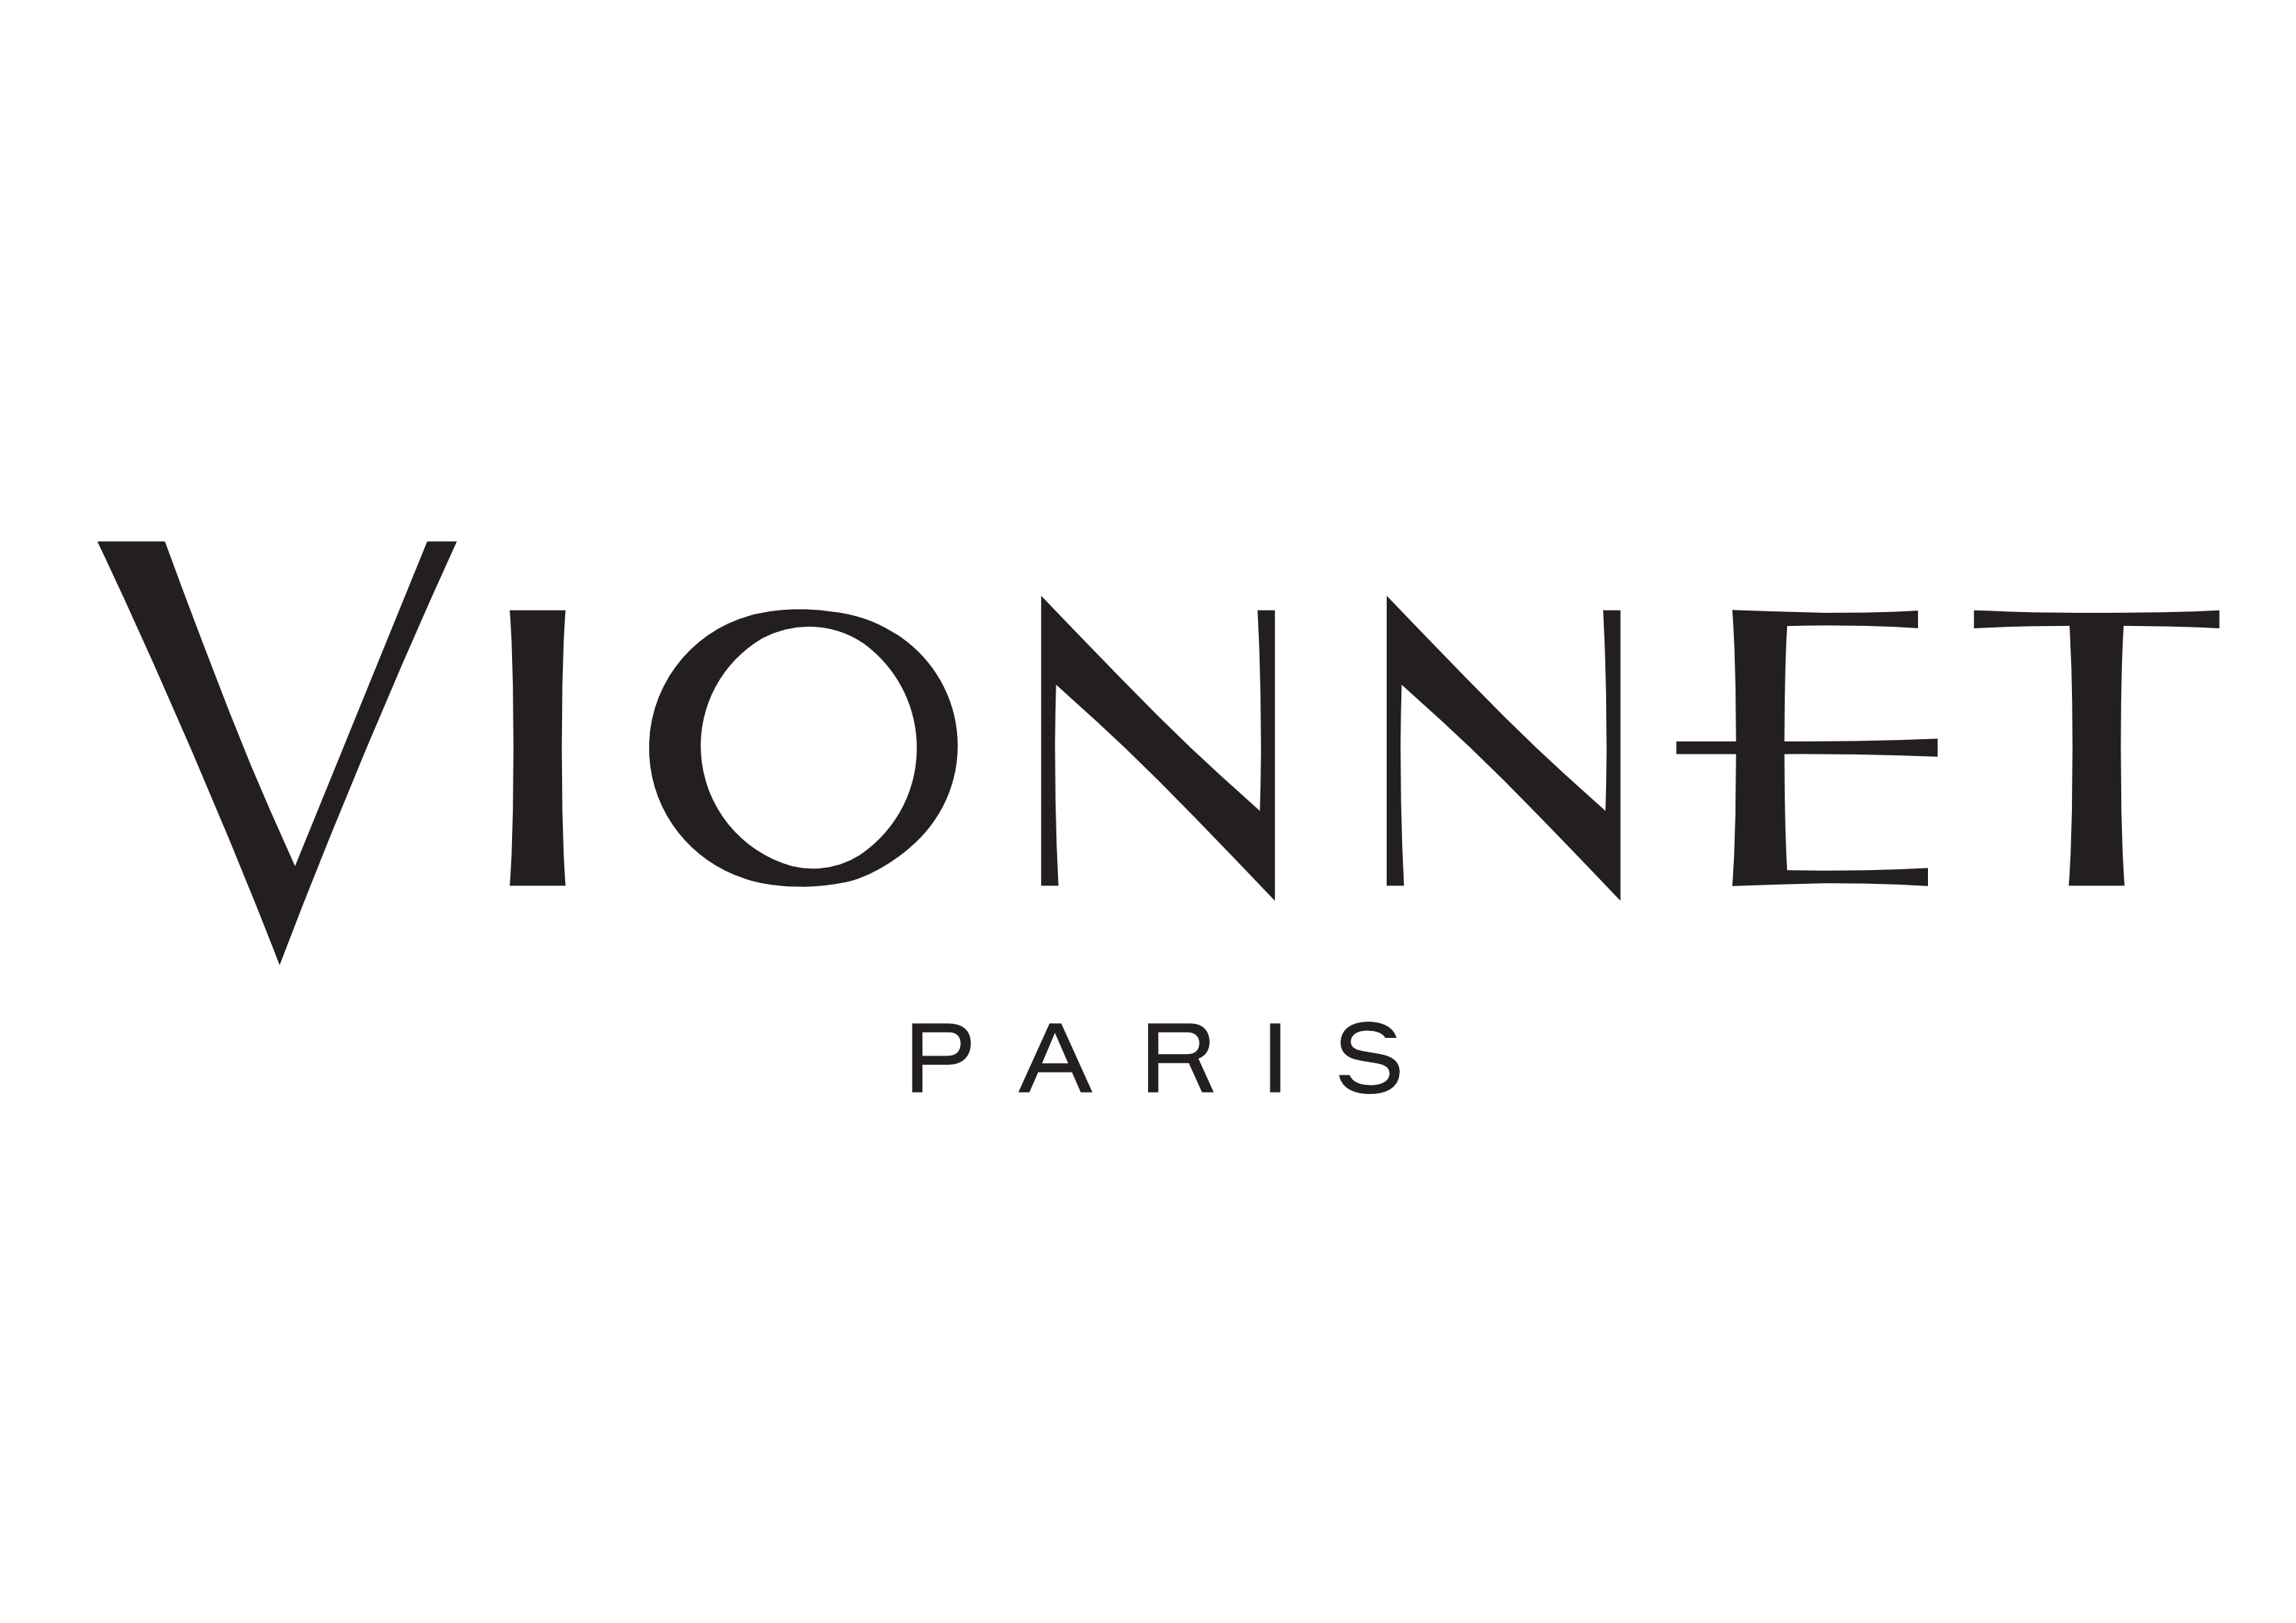 "{'liked': 0L, 'description': u'Madeleine Vionnet was a French fashion designer. Born in Loiret, France, Vionnet trained in London before returning to France to establish her first fashion house in Paris in 1912. Although it was forced to close in 1914 upon the outbreak of the First World War, it re-opened after the War and Vionnet became one of the leading designers of the inter-war period in France. Called the ""Queen of the bias cut"" and ""The architect among dressmakers"", Vionnet is best known today for her elegant Grecian-style dresses and for popularising the bias cut within the fashion world and is credited with inspiring a number of recent designers.', 'fcount': 2091, 'logo': u'https://d2go30nqlx7k6d.cloudfront.net/designer/vionnet-1470104224', 'viewed': 6487L, 'category': u'p', 'name': u'VIONNET', 'url': 'VIONNET', 'locname': u'VIONNET', 'mcount': 0, 'haswebsite': True}"